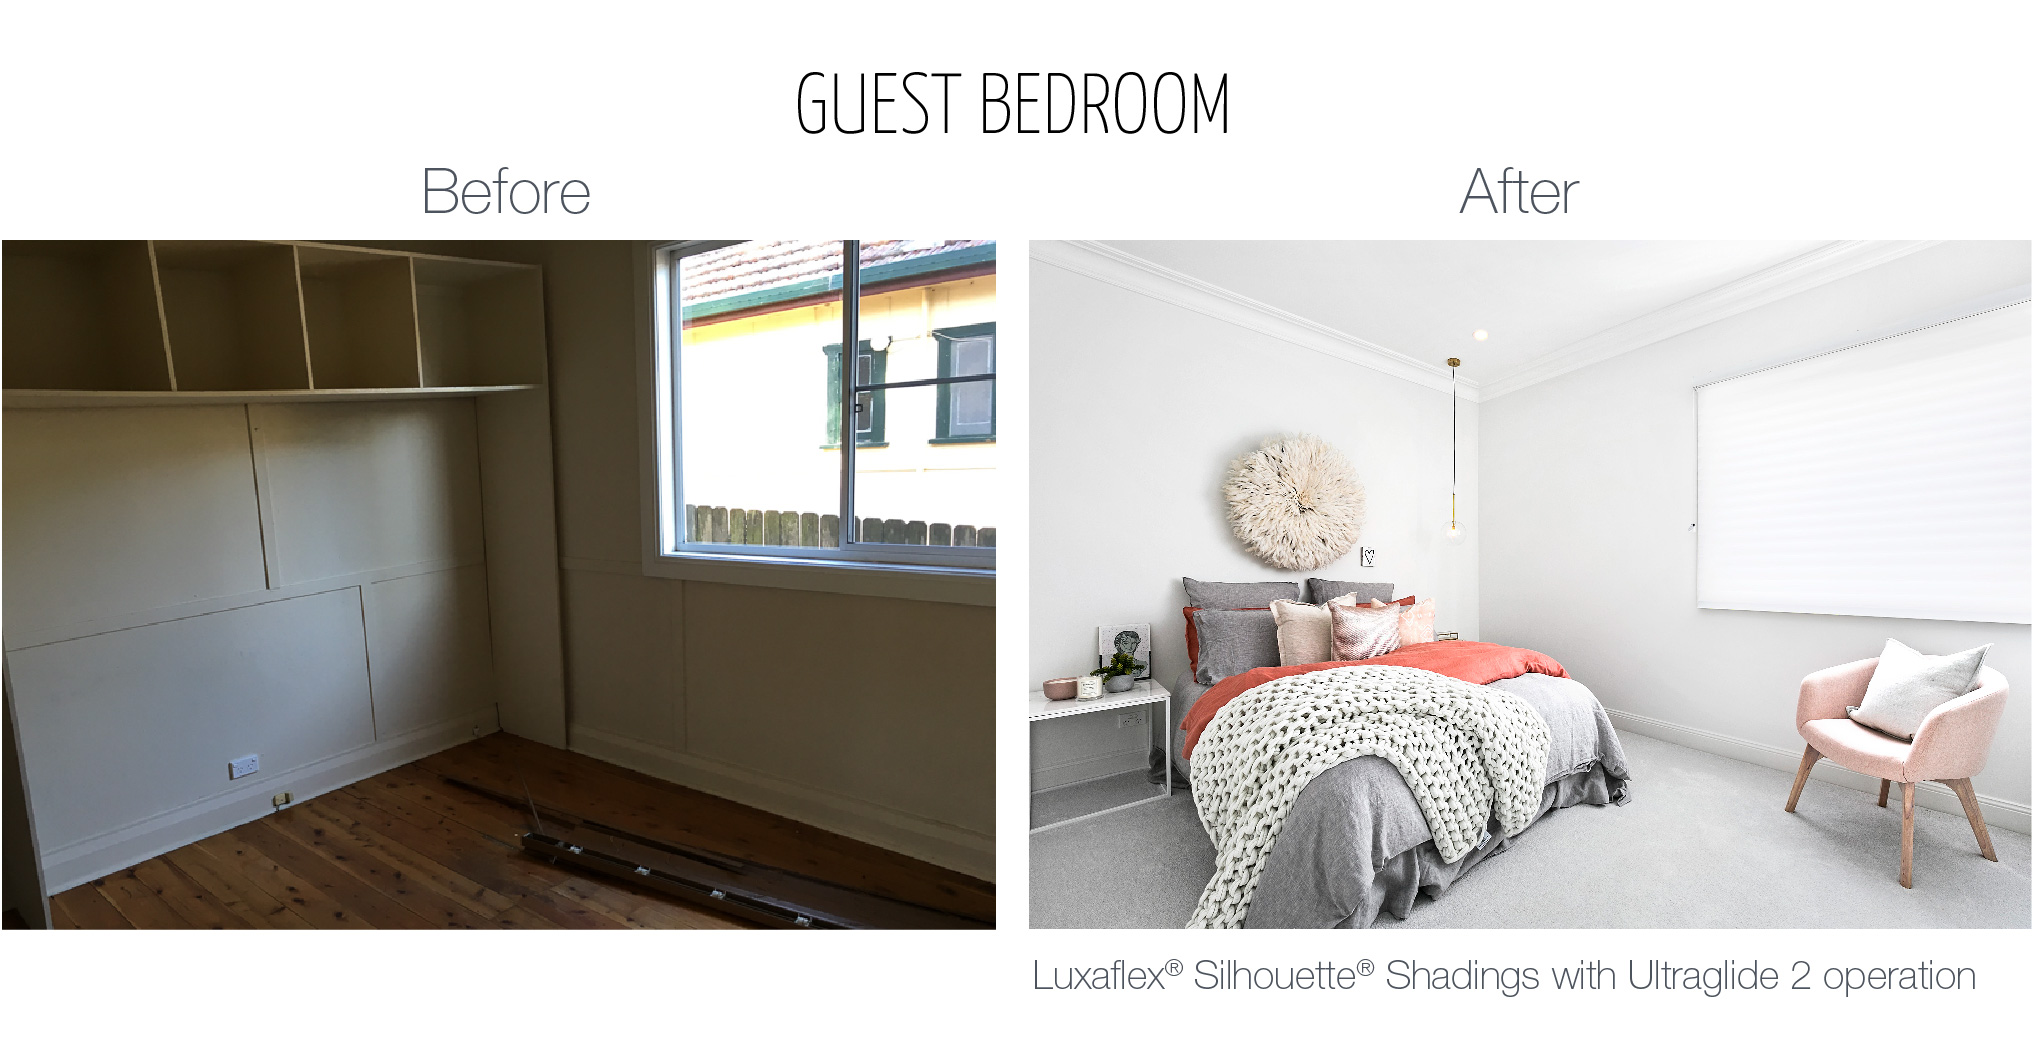 Luxaflex - Blog - Three Birds - Guest Bedroom